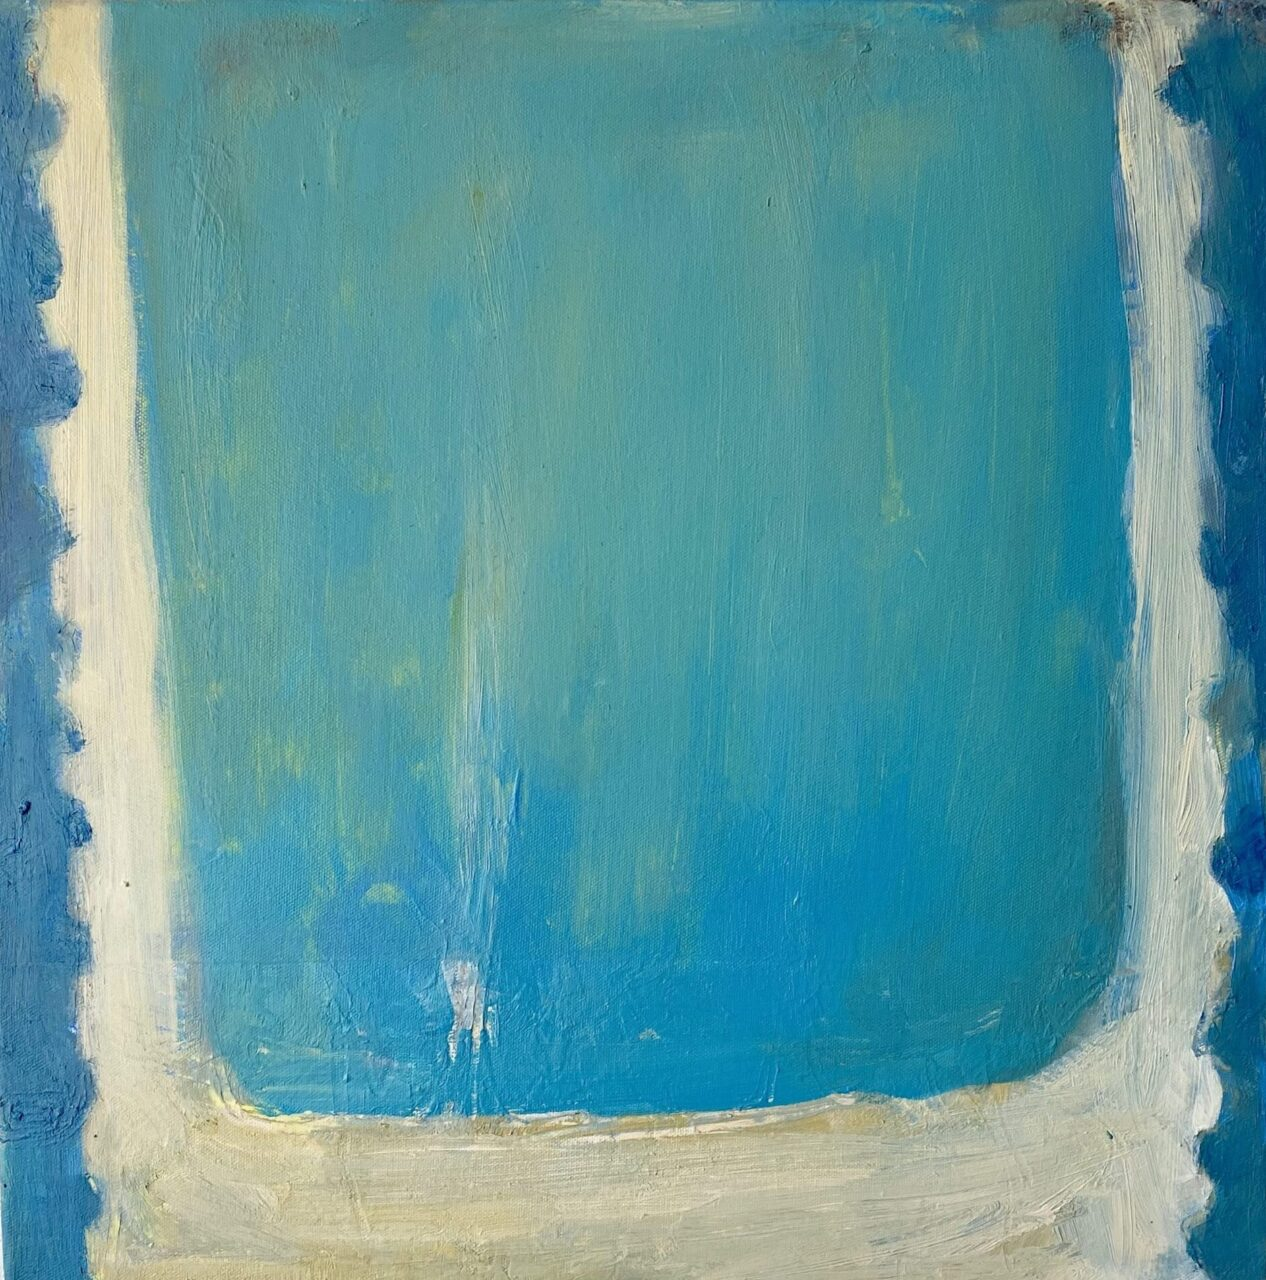 Blue bath, cold heart acrylic and oil on canvas 50x50cm